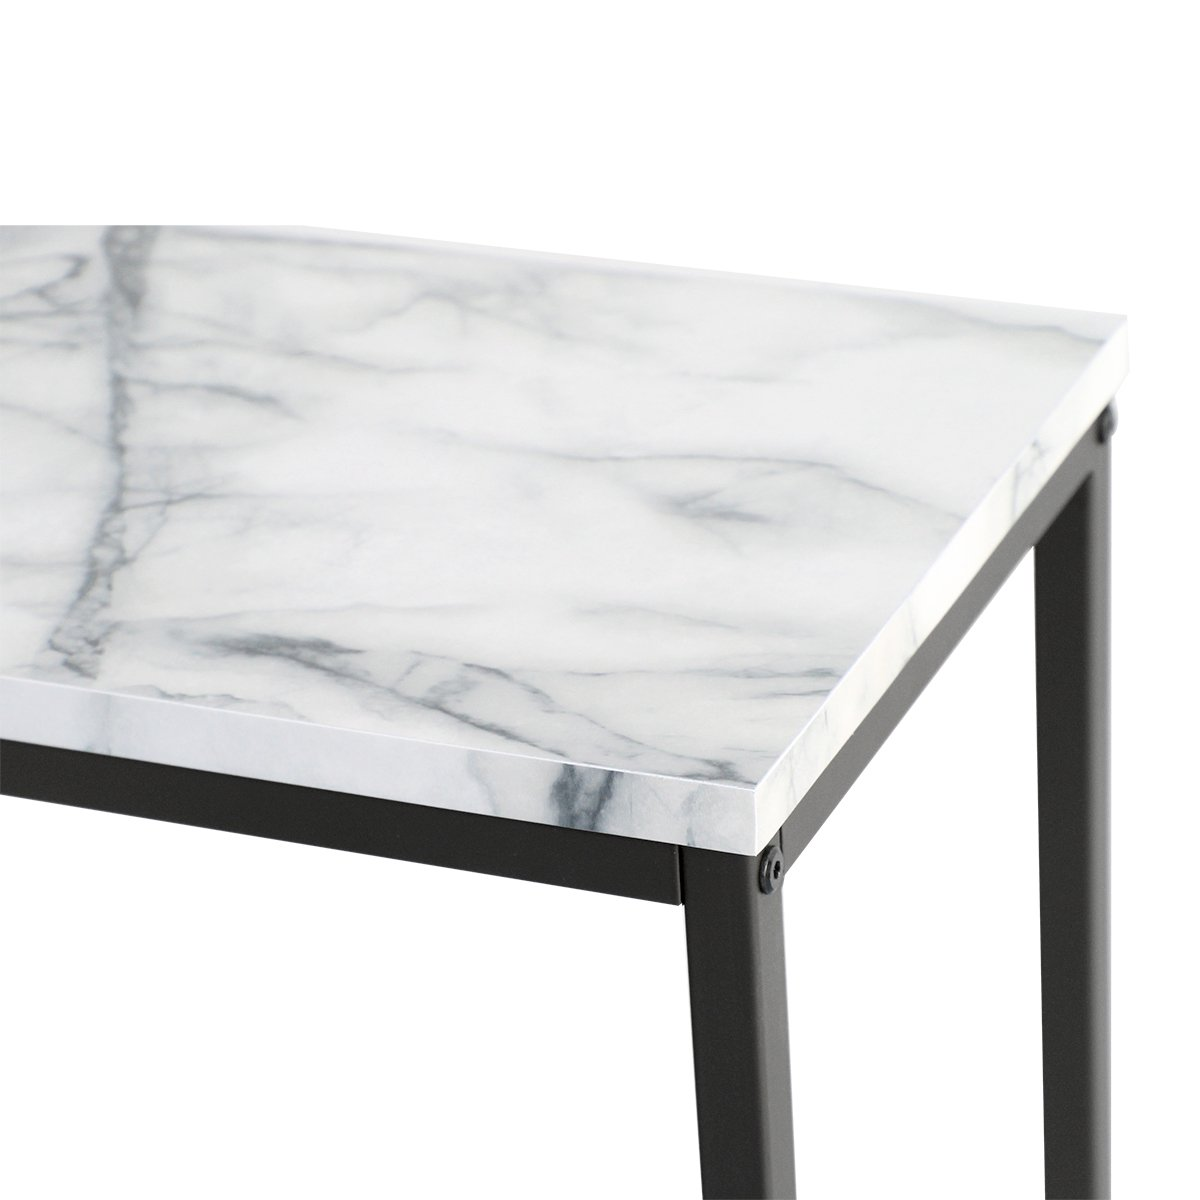 Delightful Tilly Lin Modern Accent Faux Marble Console Table, Black Metal Frame, For  Hallway Entryway Living Room, Entrance Hall Furniture, Carrara